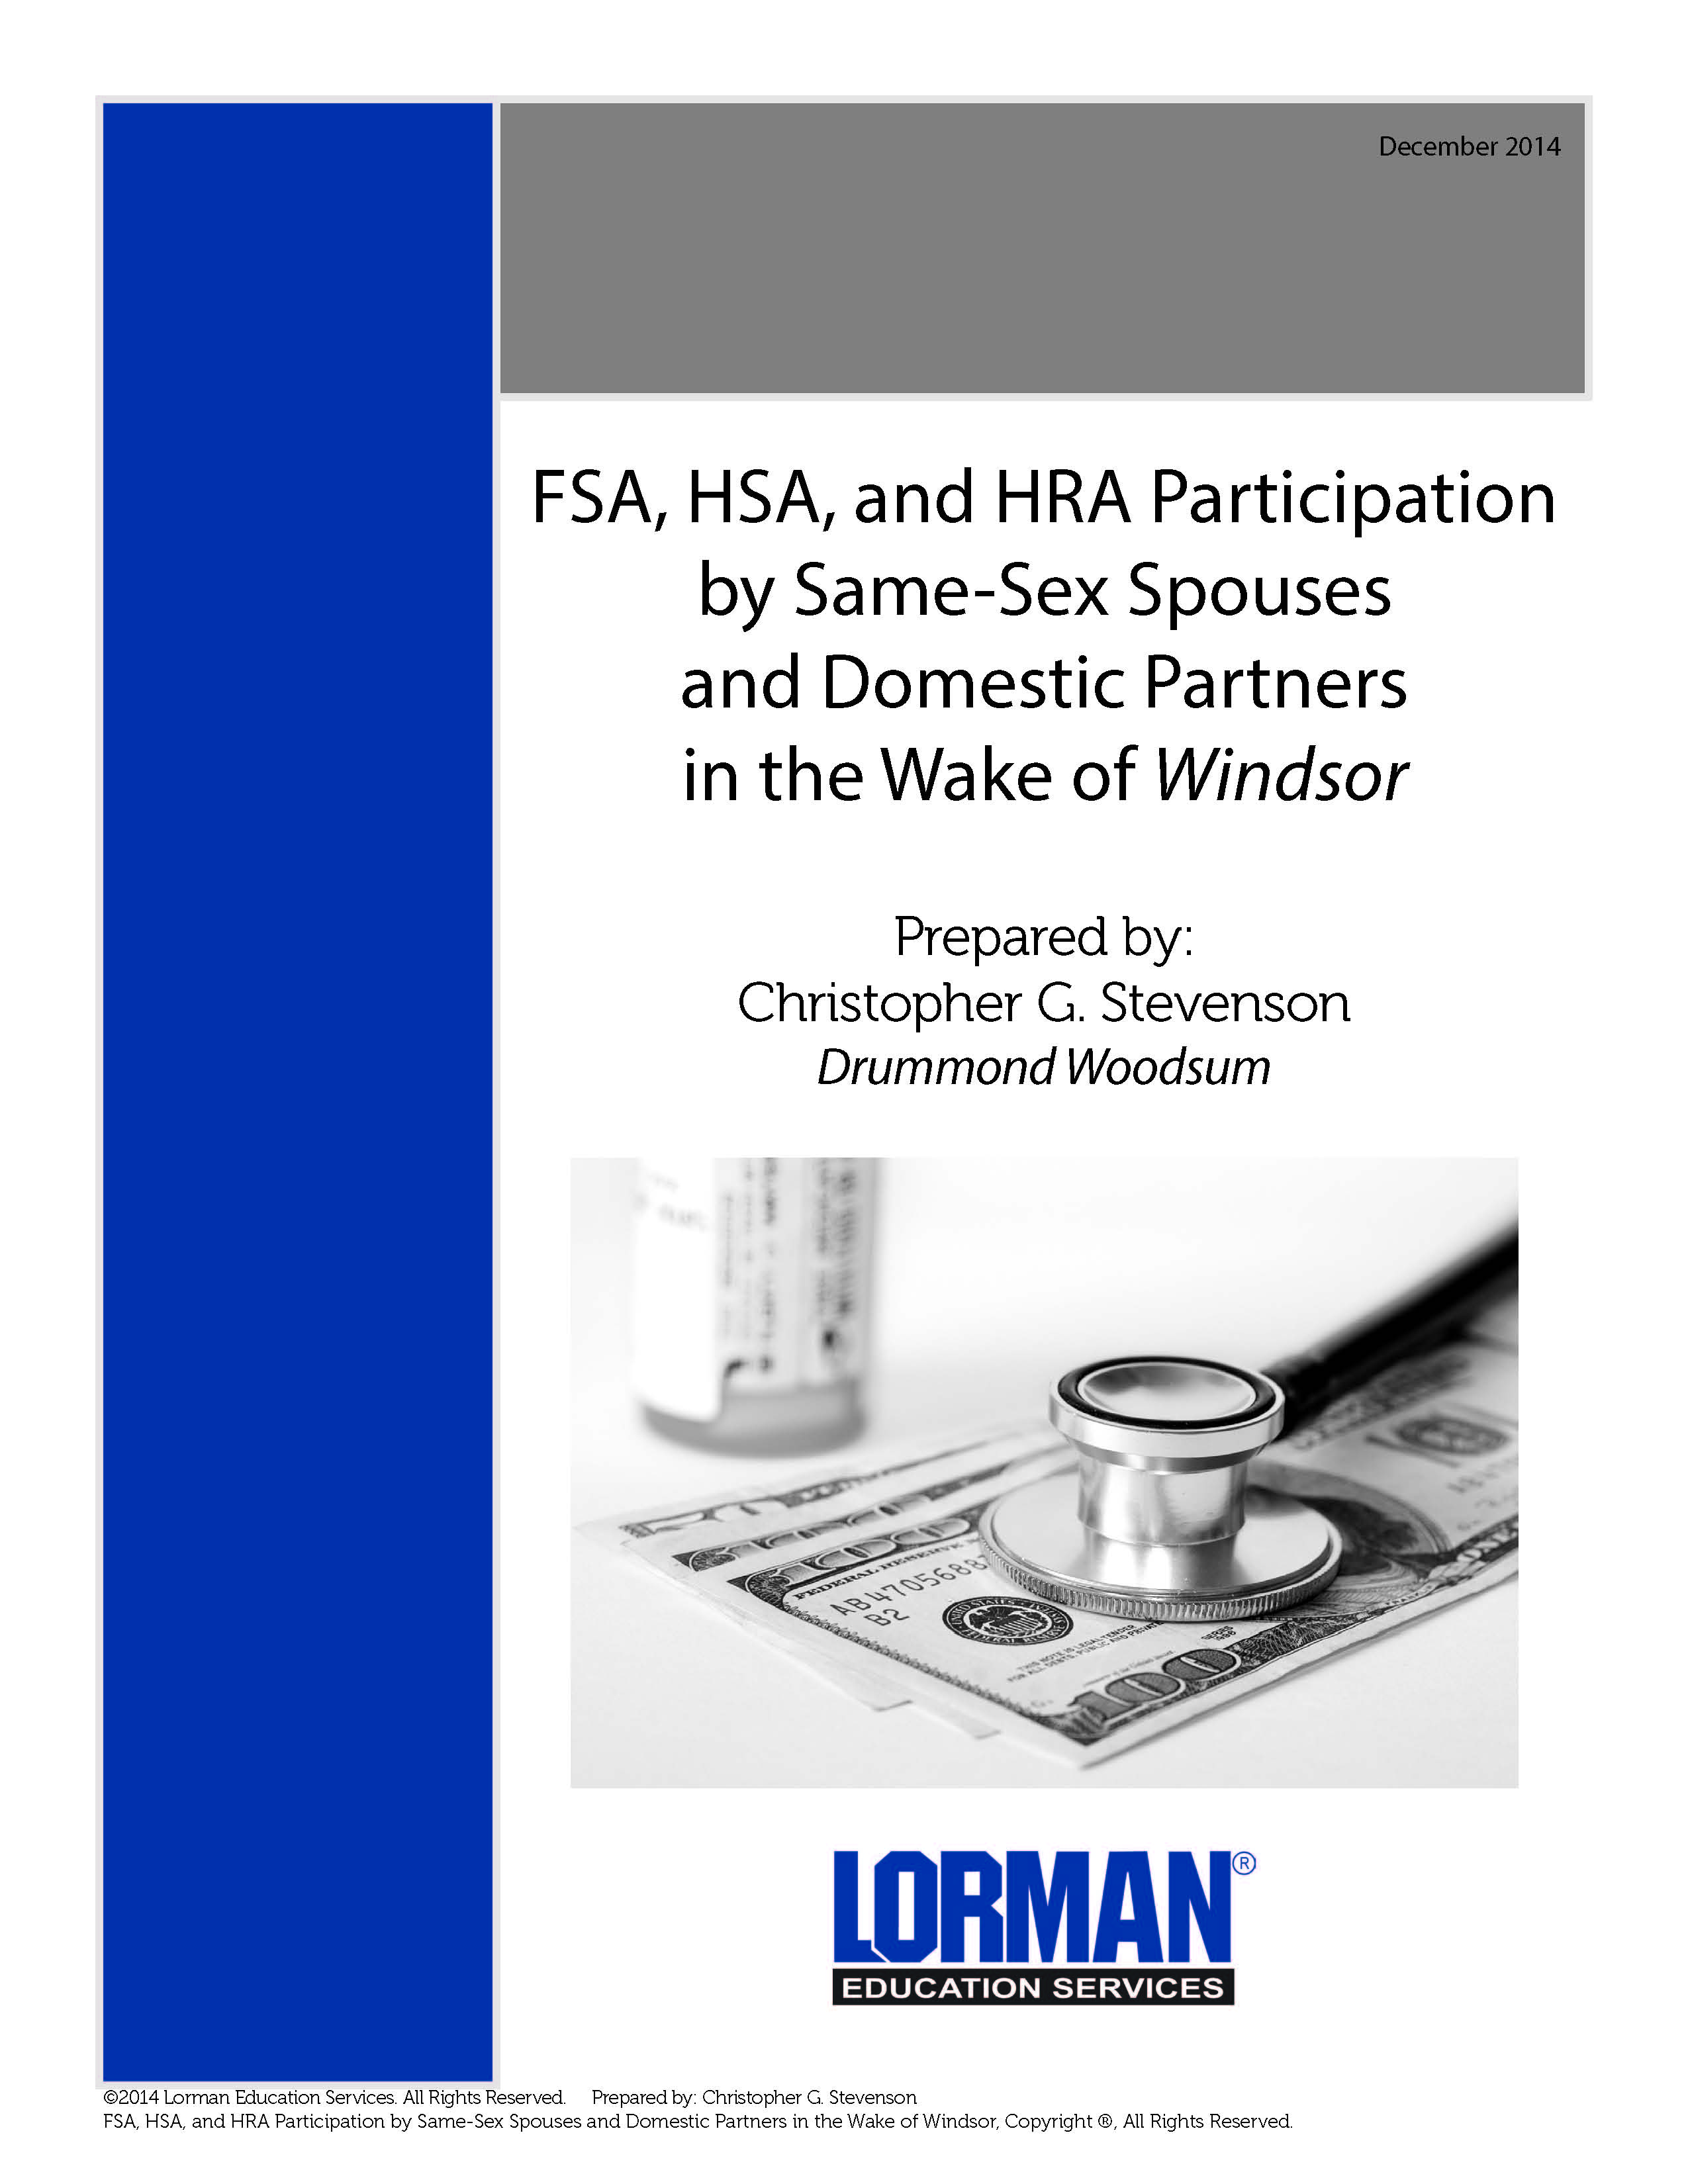 FSA, HSA, and HRA Participation by Same-Sex Spouses and Domestic Partners in the Wake of Windsor